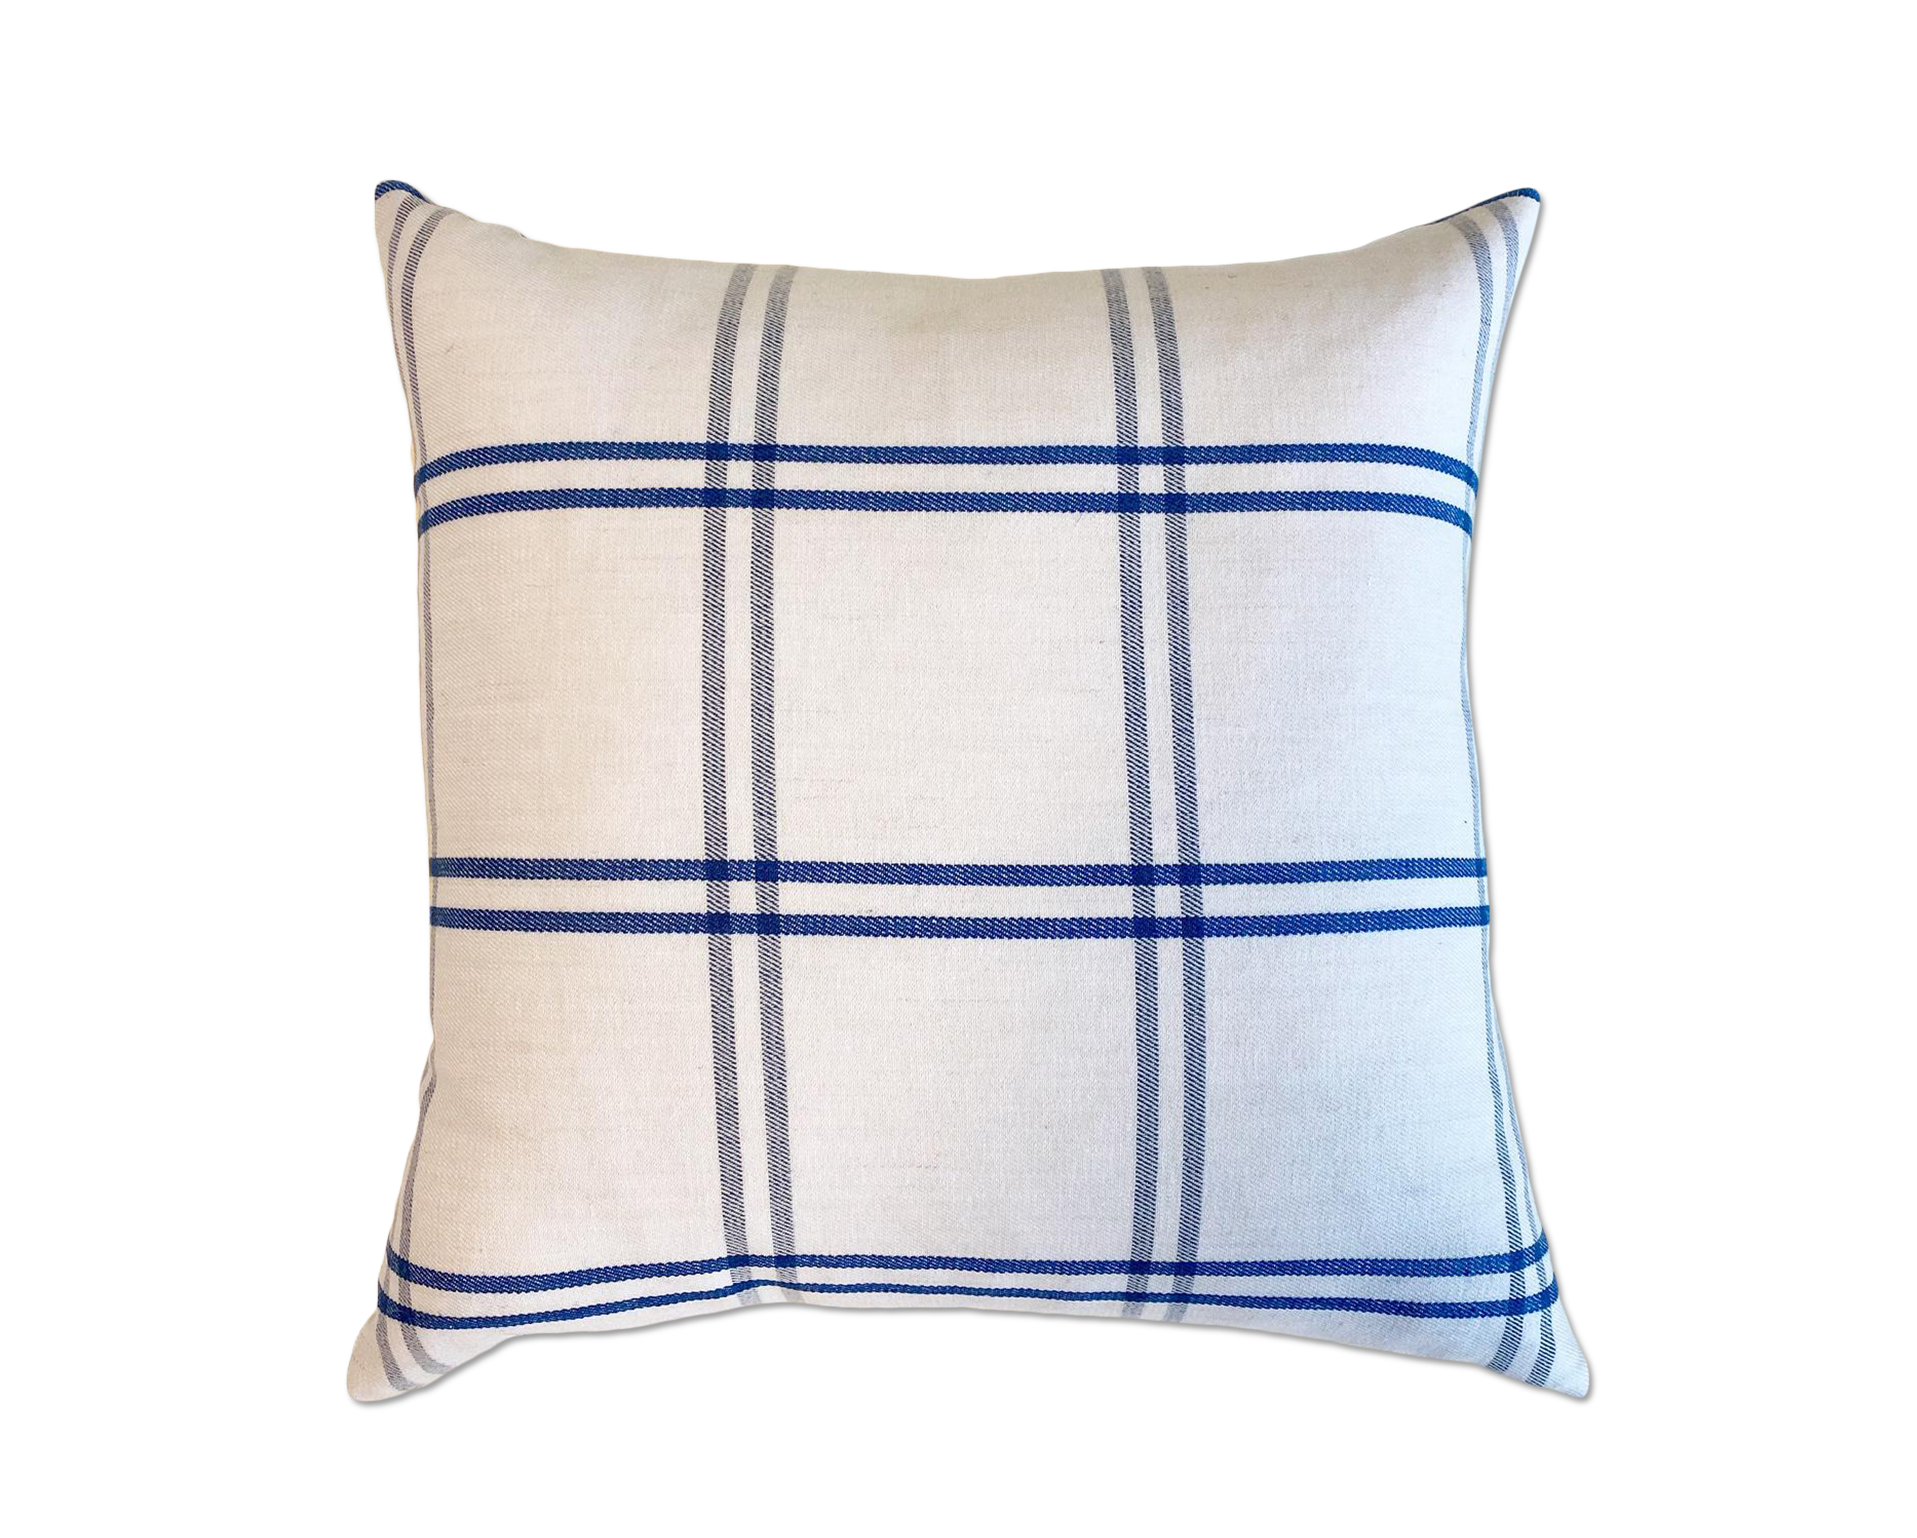 Schumacher Indigo Plaid Pillow, 18""